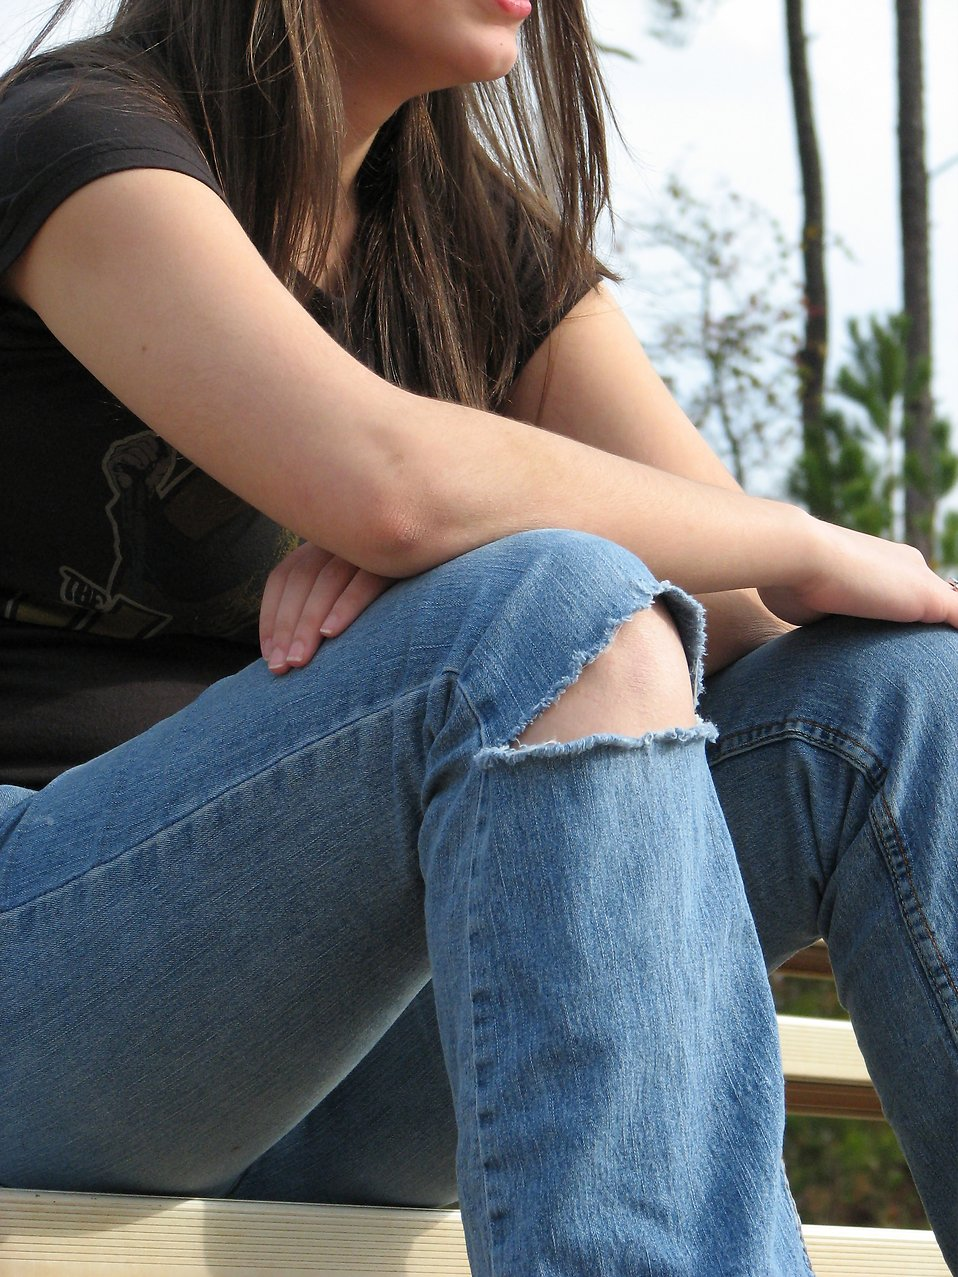 A teenage girl with ripped jeans : Free Stock Photo